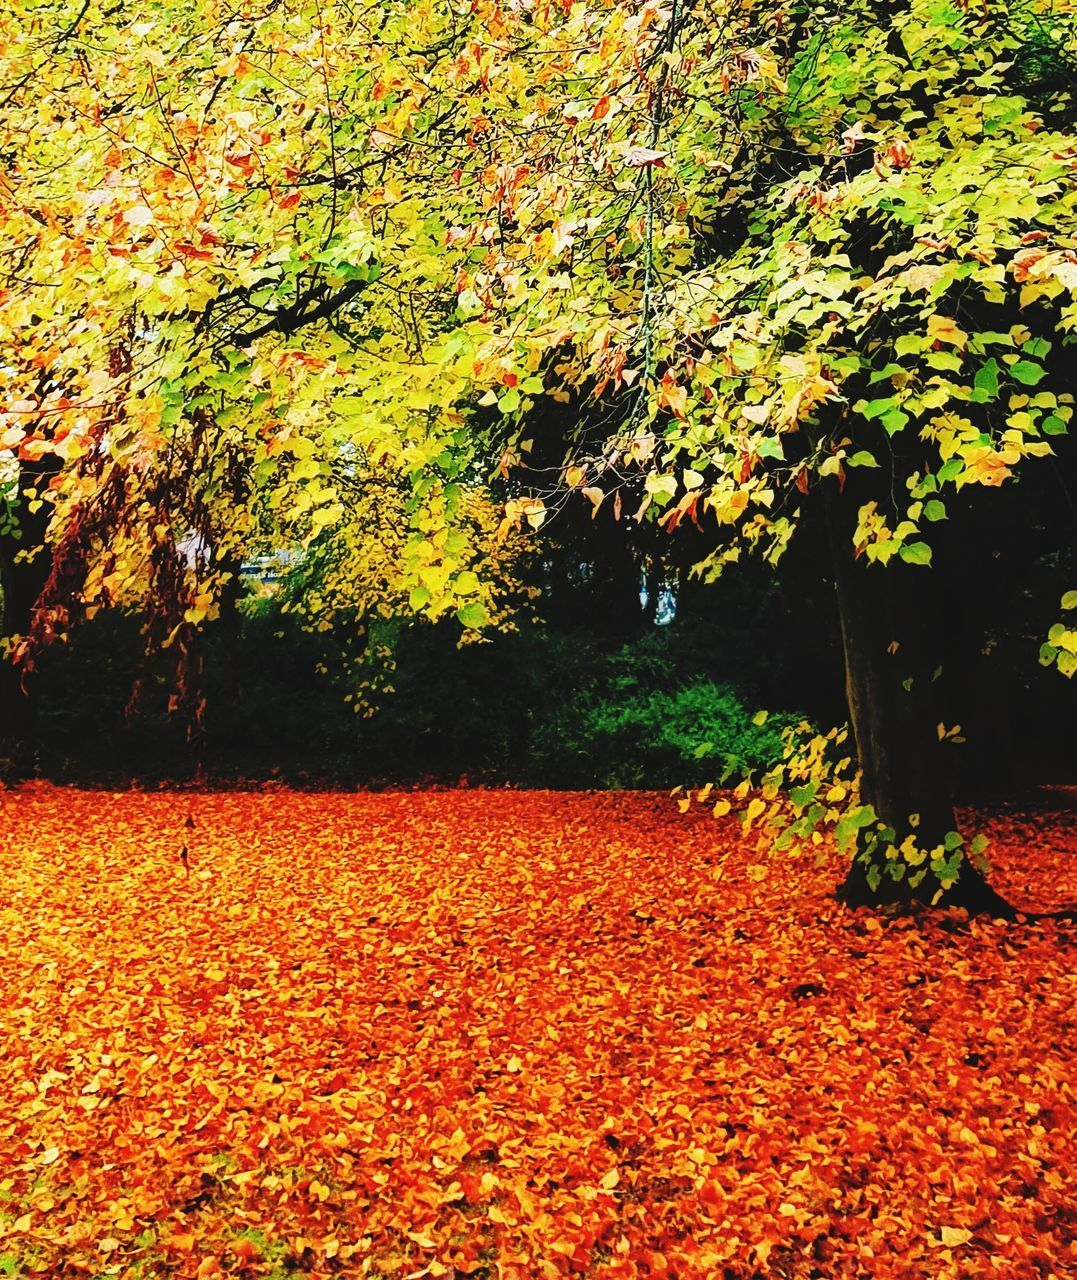 autumn, change, tree, leaf, plant part, plant, orange color, beauty in nature, nature, growth, land, park, tranquility, falling, yellow, day, outdoors, field, tranquil scene, scenics - nature, no people, leaves, fall, maple leaf, autumn collection, natural condition